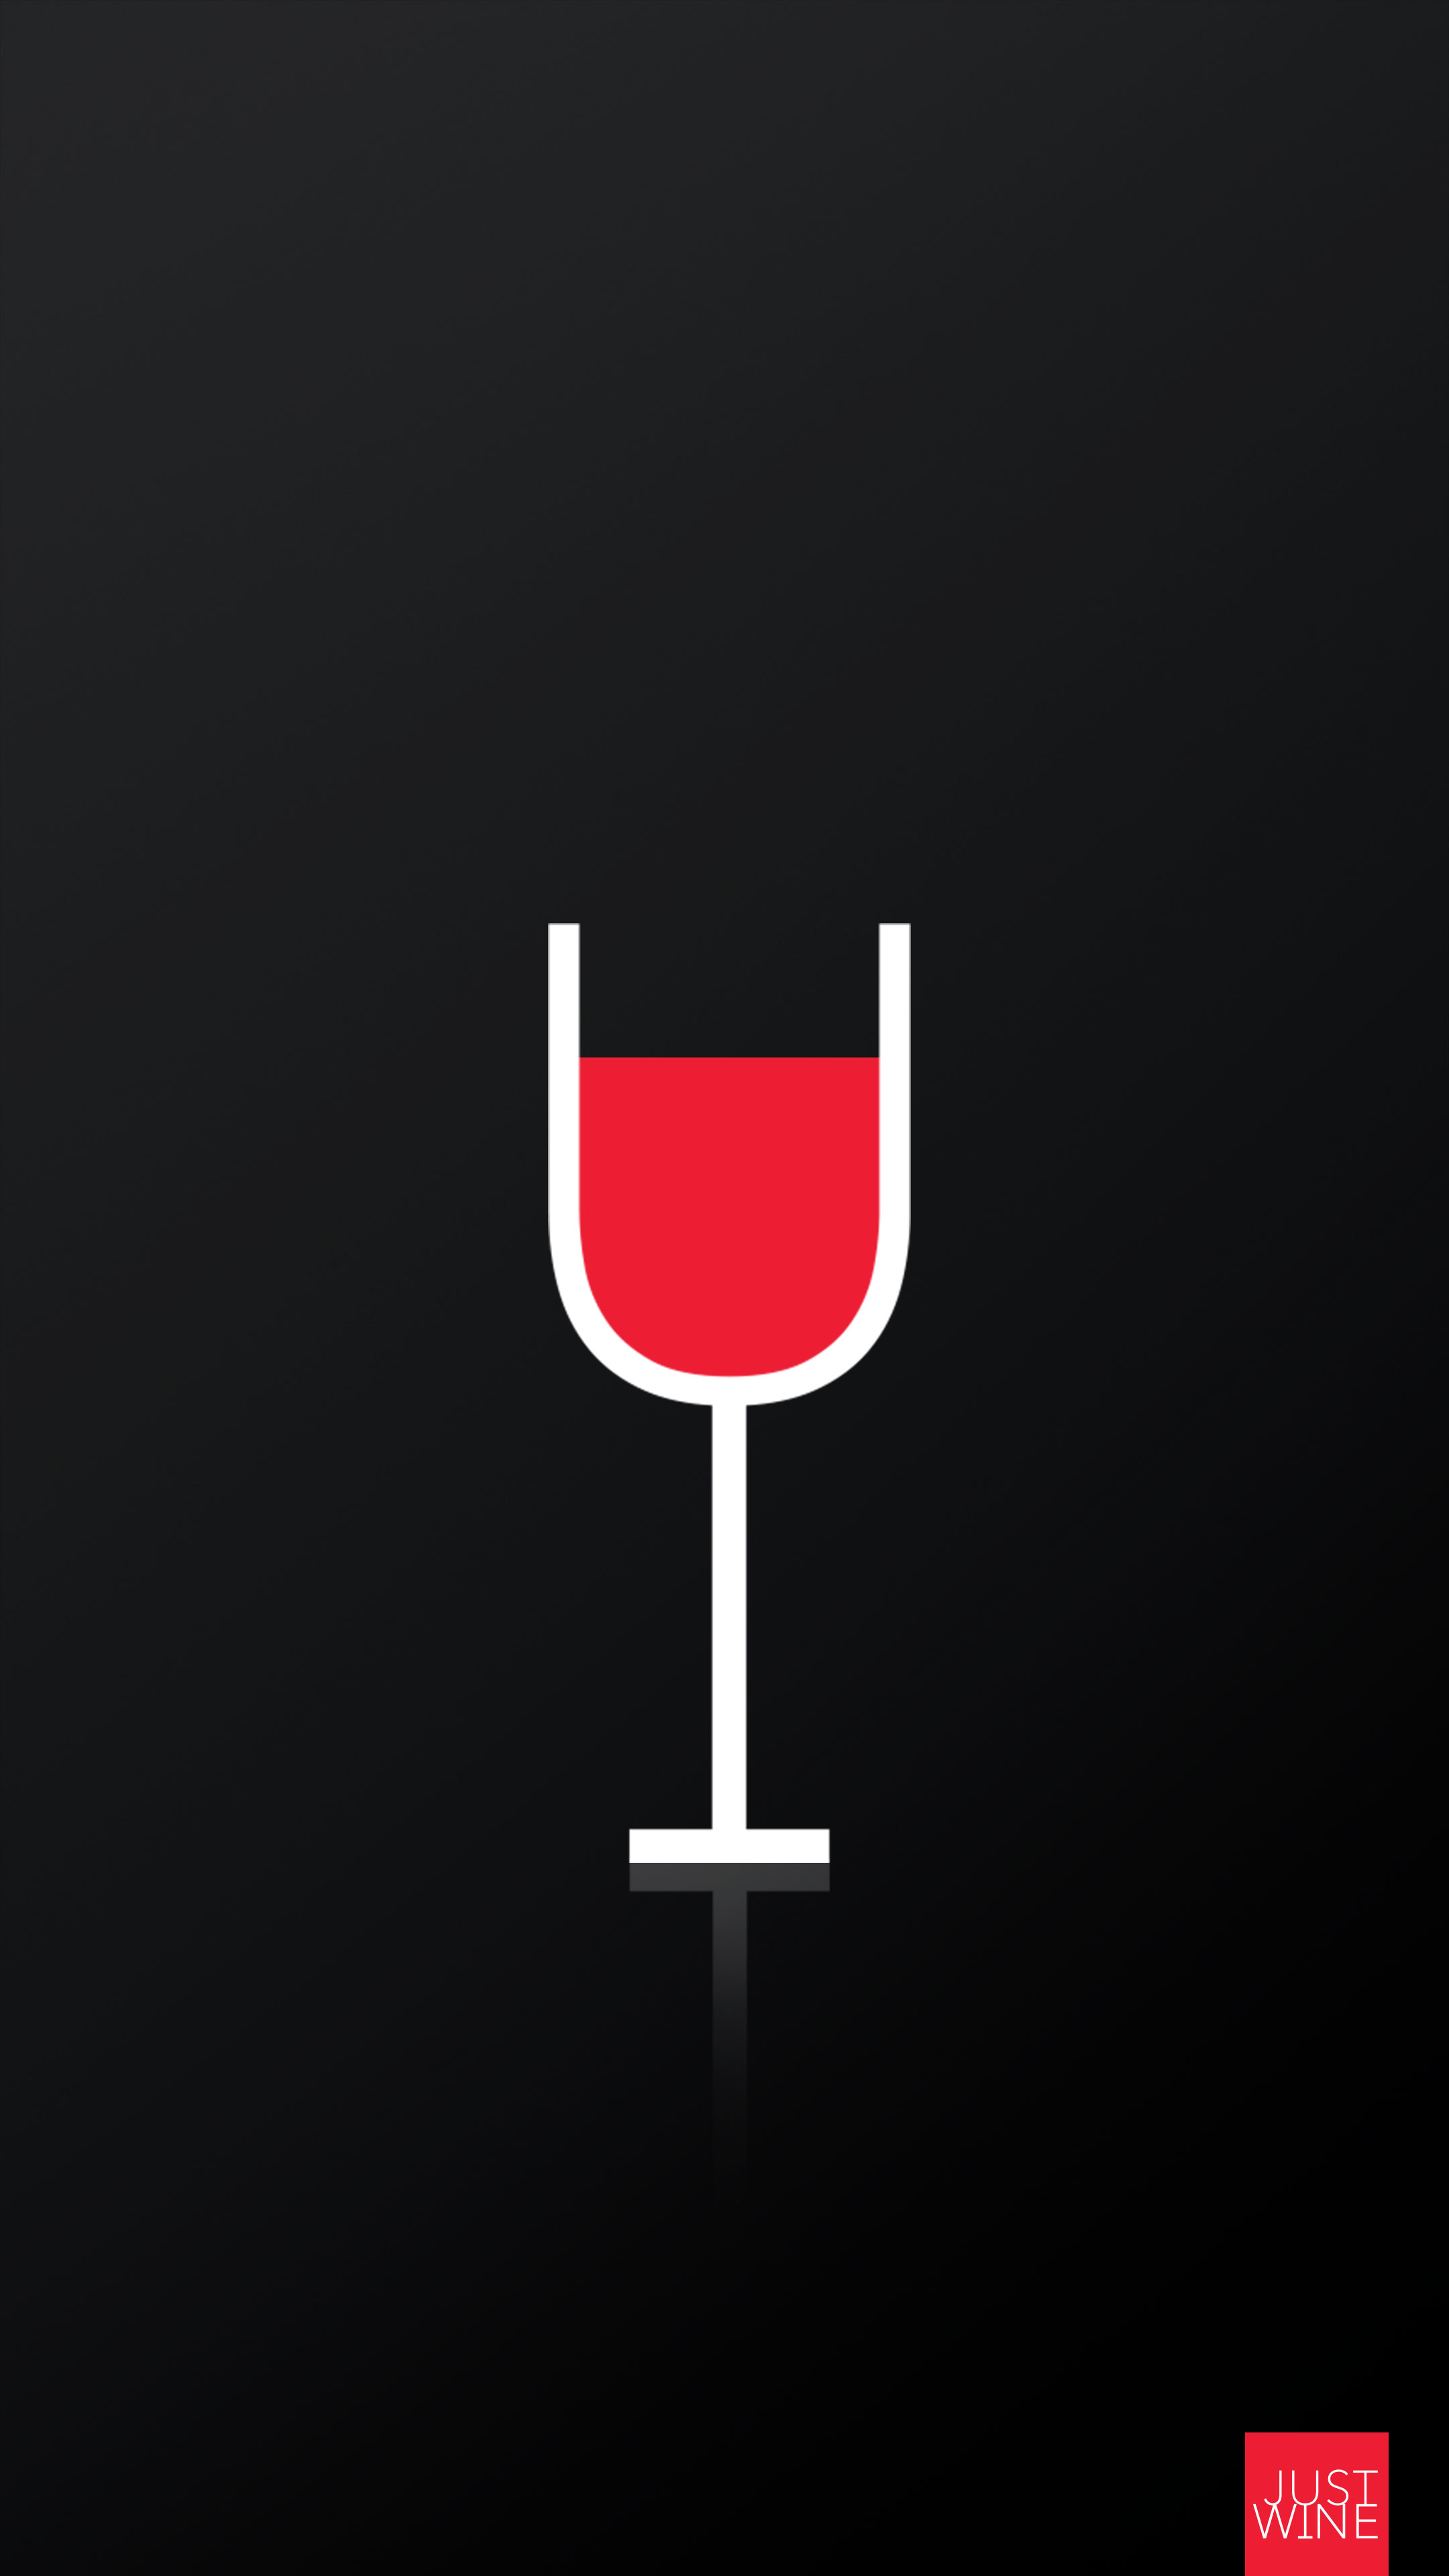 just-wine-mobile-wallpaper-background-iphone-red